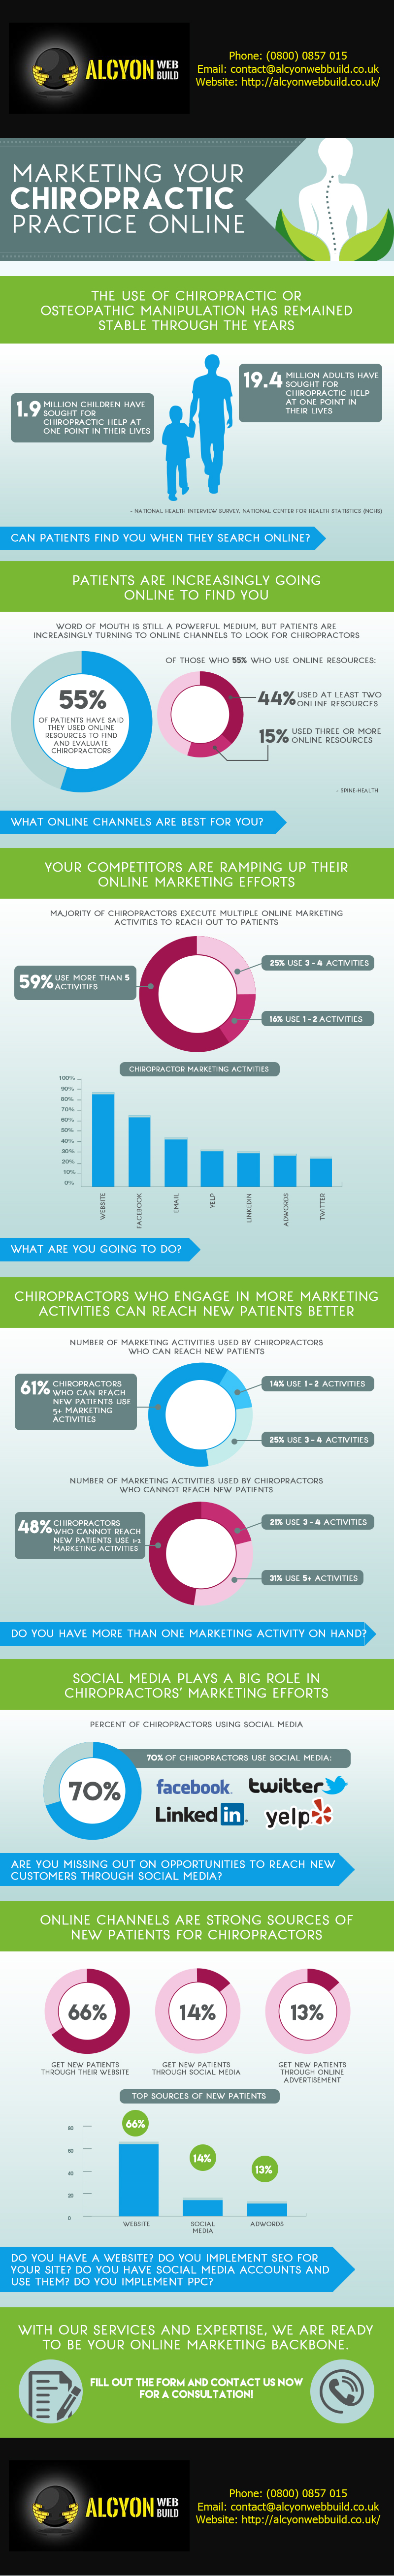 """AlcyonWebBuild.co.uk-Marketing-for-Chiropractors-Infographic"